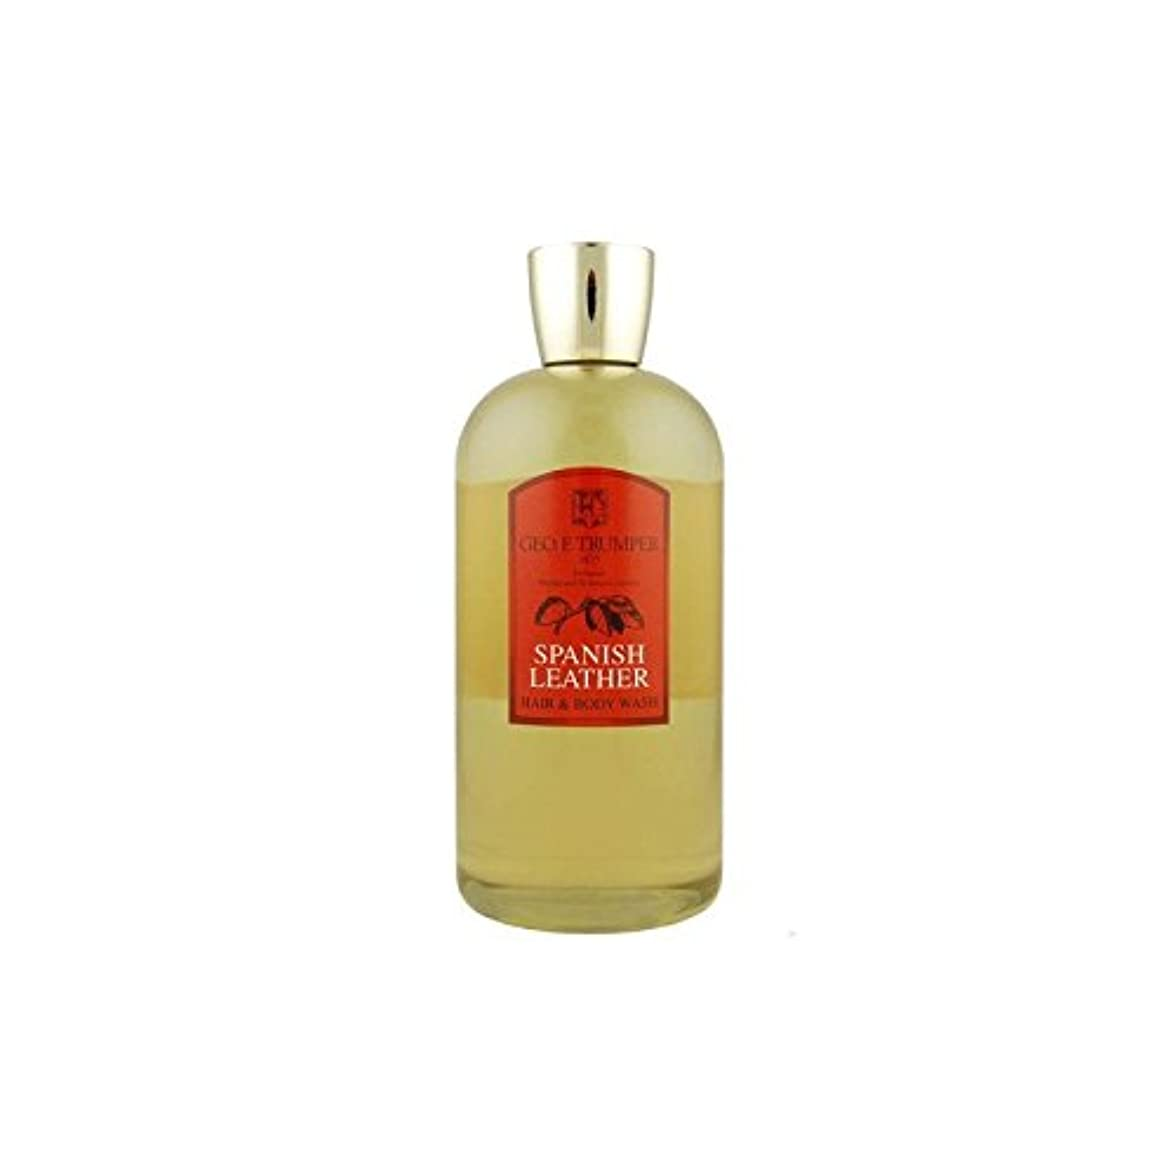 Trumpers Spanish Leather Hair and Body Wash - 500mlTravel Bottle (Pack of 6) - 革の髪とボディウォッシュスペイン語 - 500ボトル x6 [...